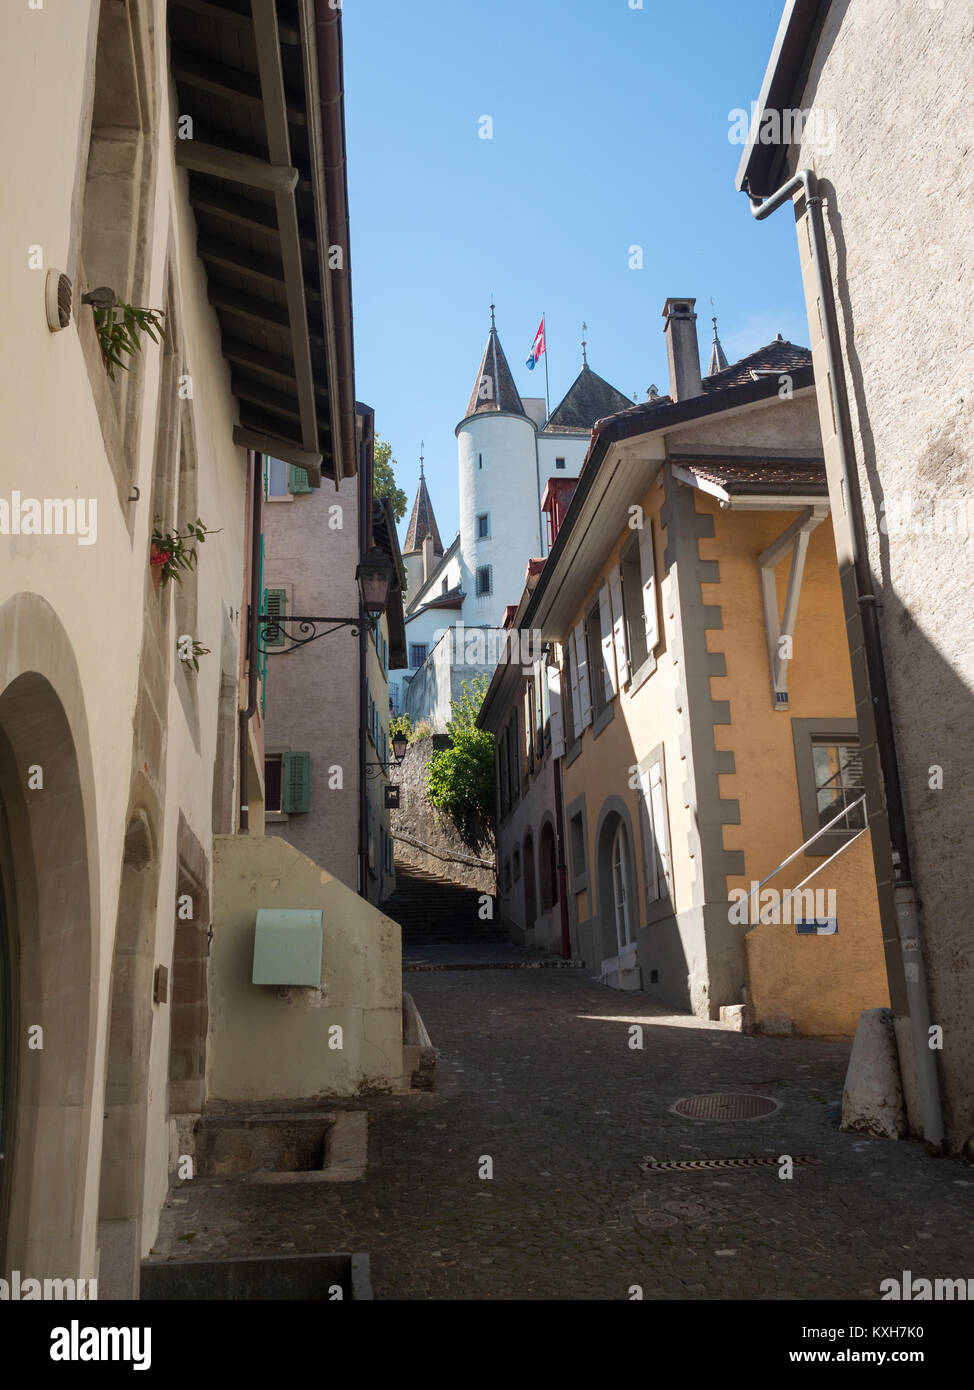 Nyon street with the castle at the top - Stock Image